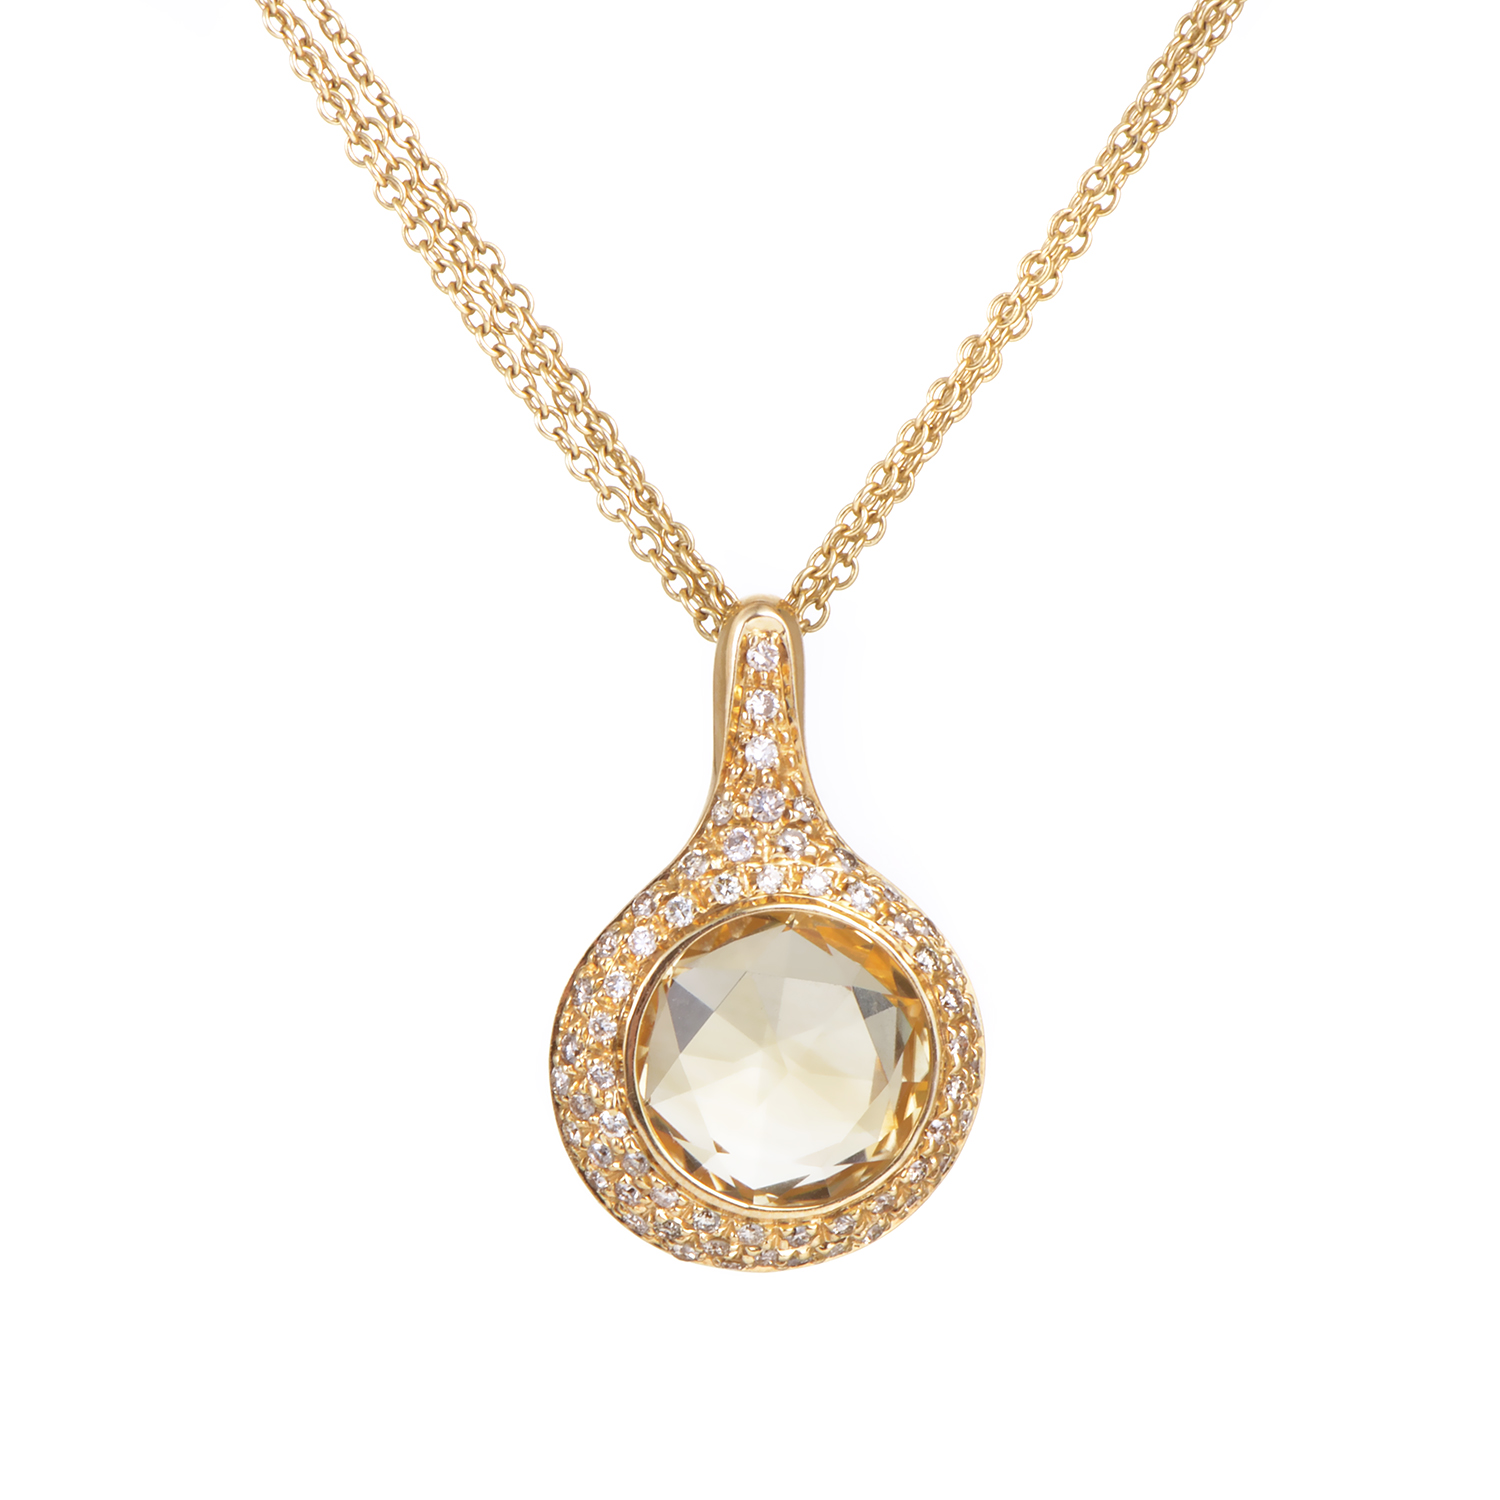 Antonini Women's 18K Yellow Gold Diamond & Citrine Pendant Necklace